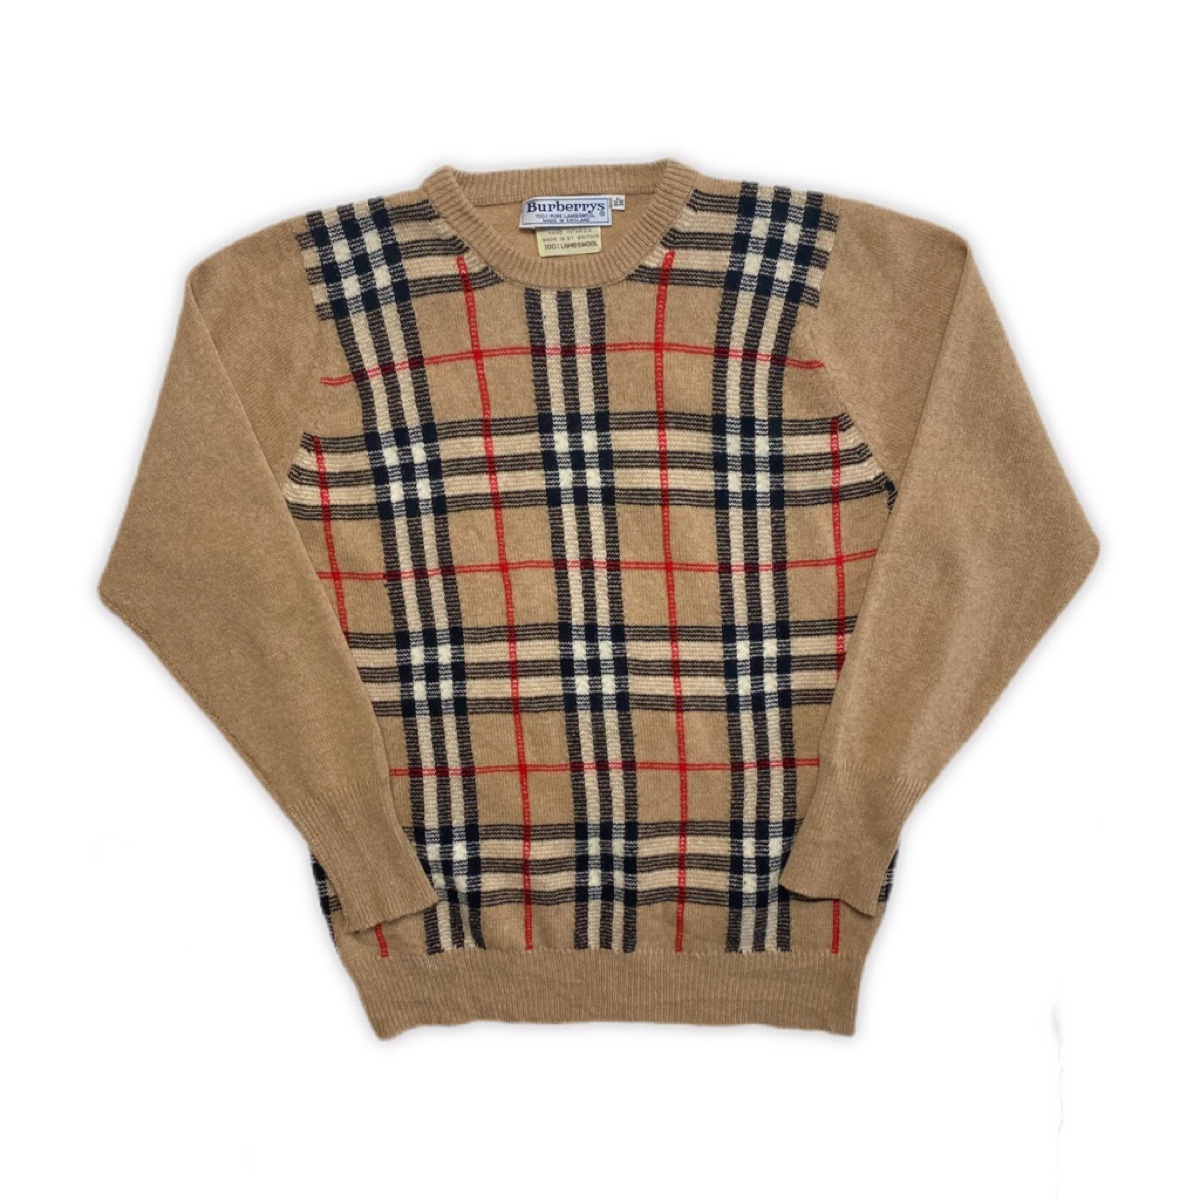 Vintage Burberry Nova Check Jumper Knit Sweater